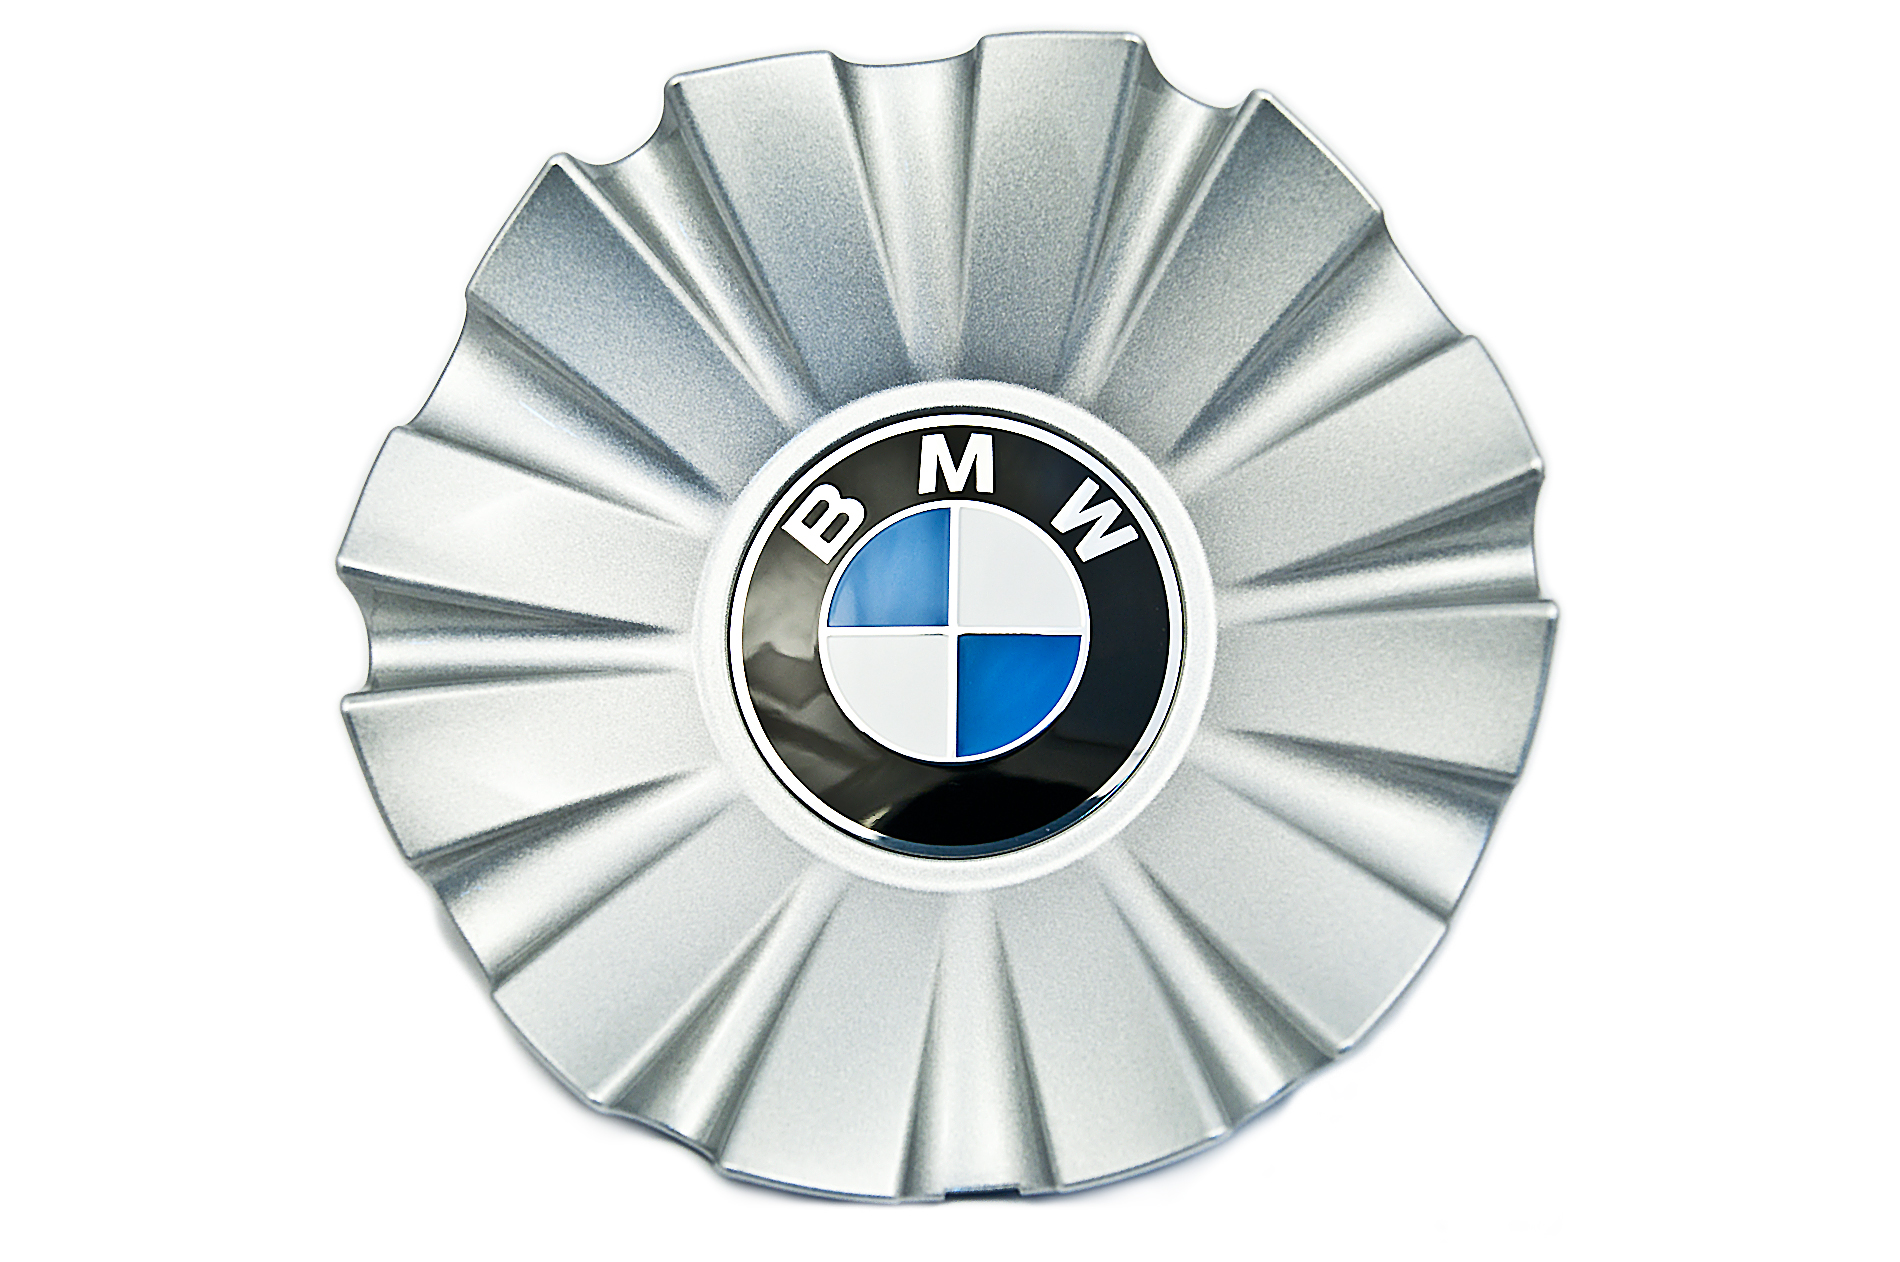 set wheel ci blk center logo caps r cir cap rwd bmw for bbs with only black dinan inch product